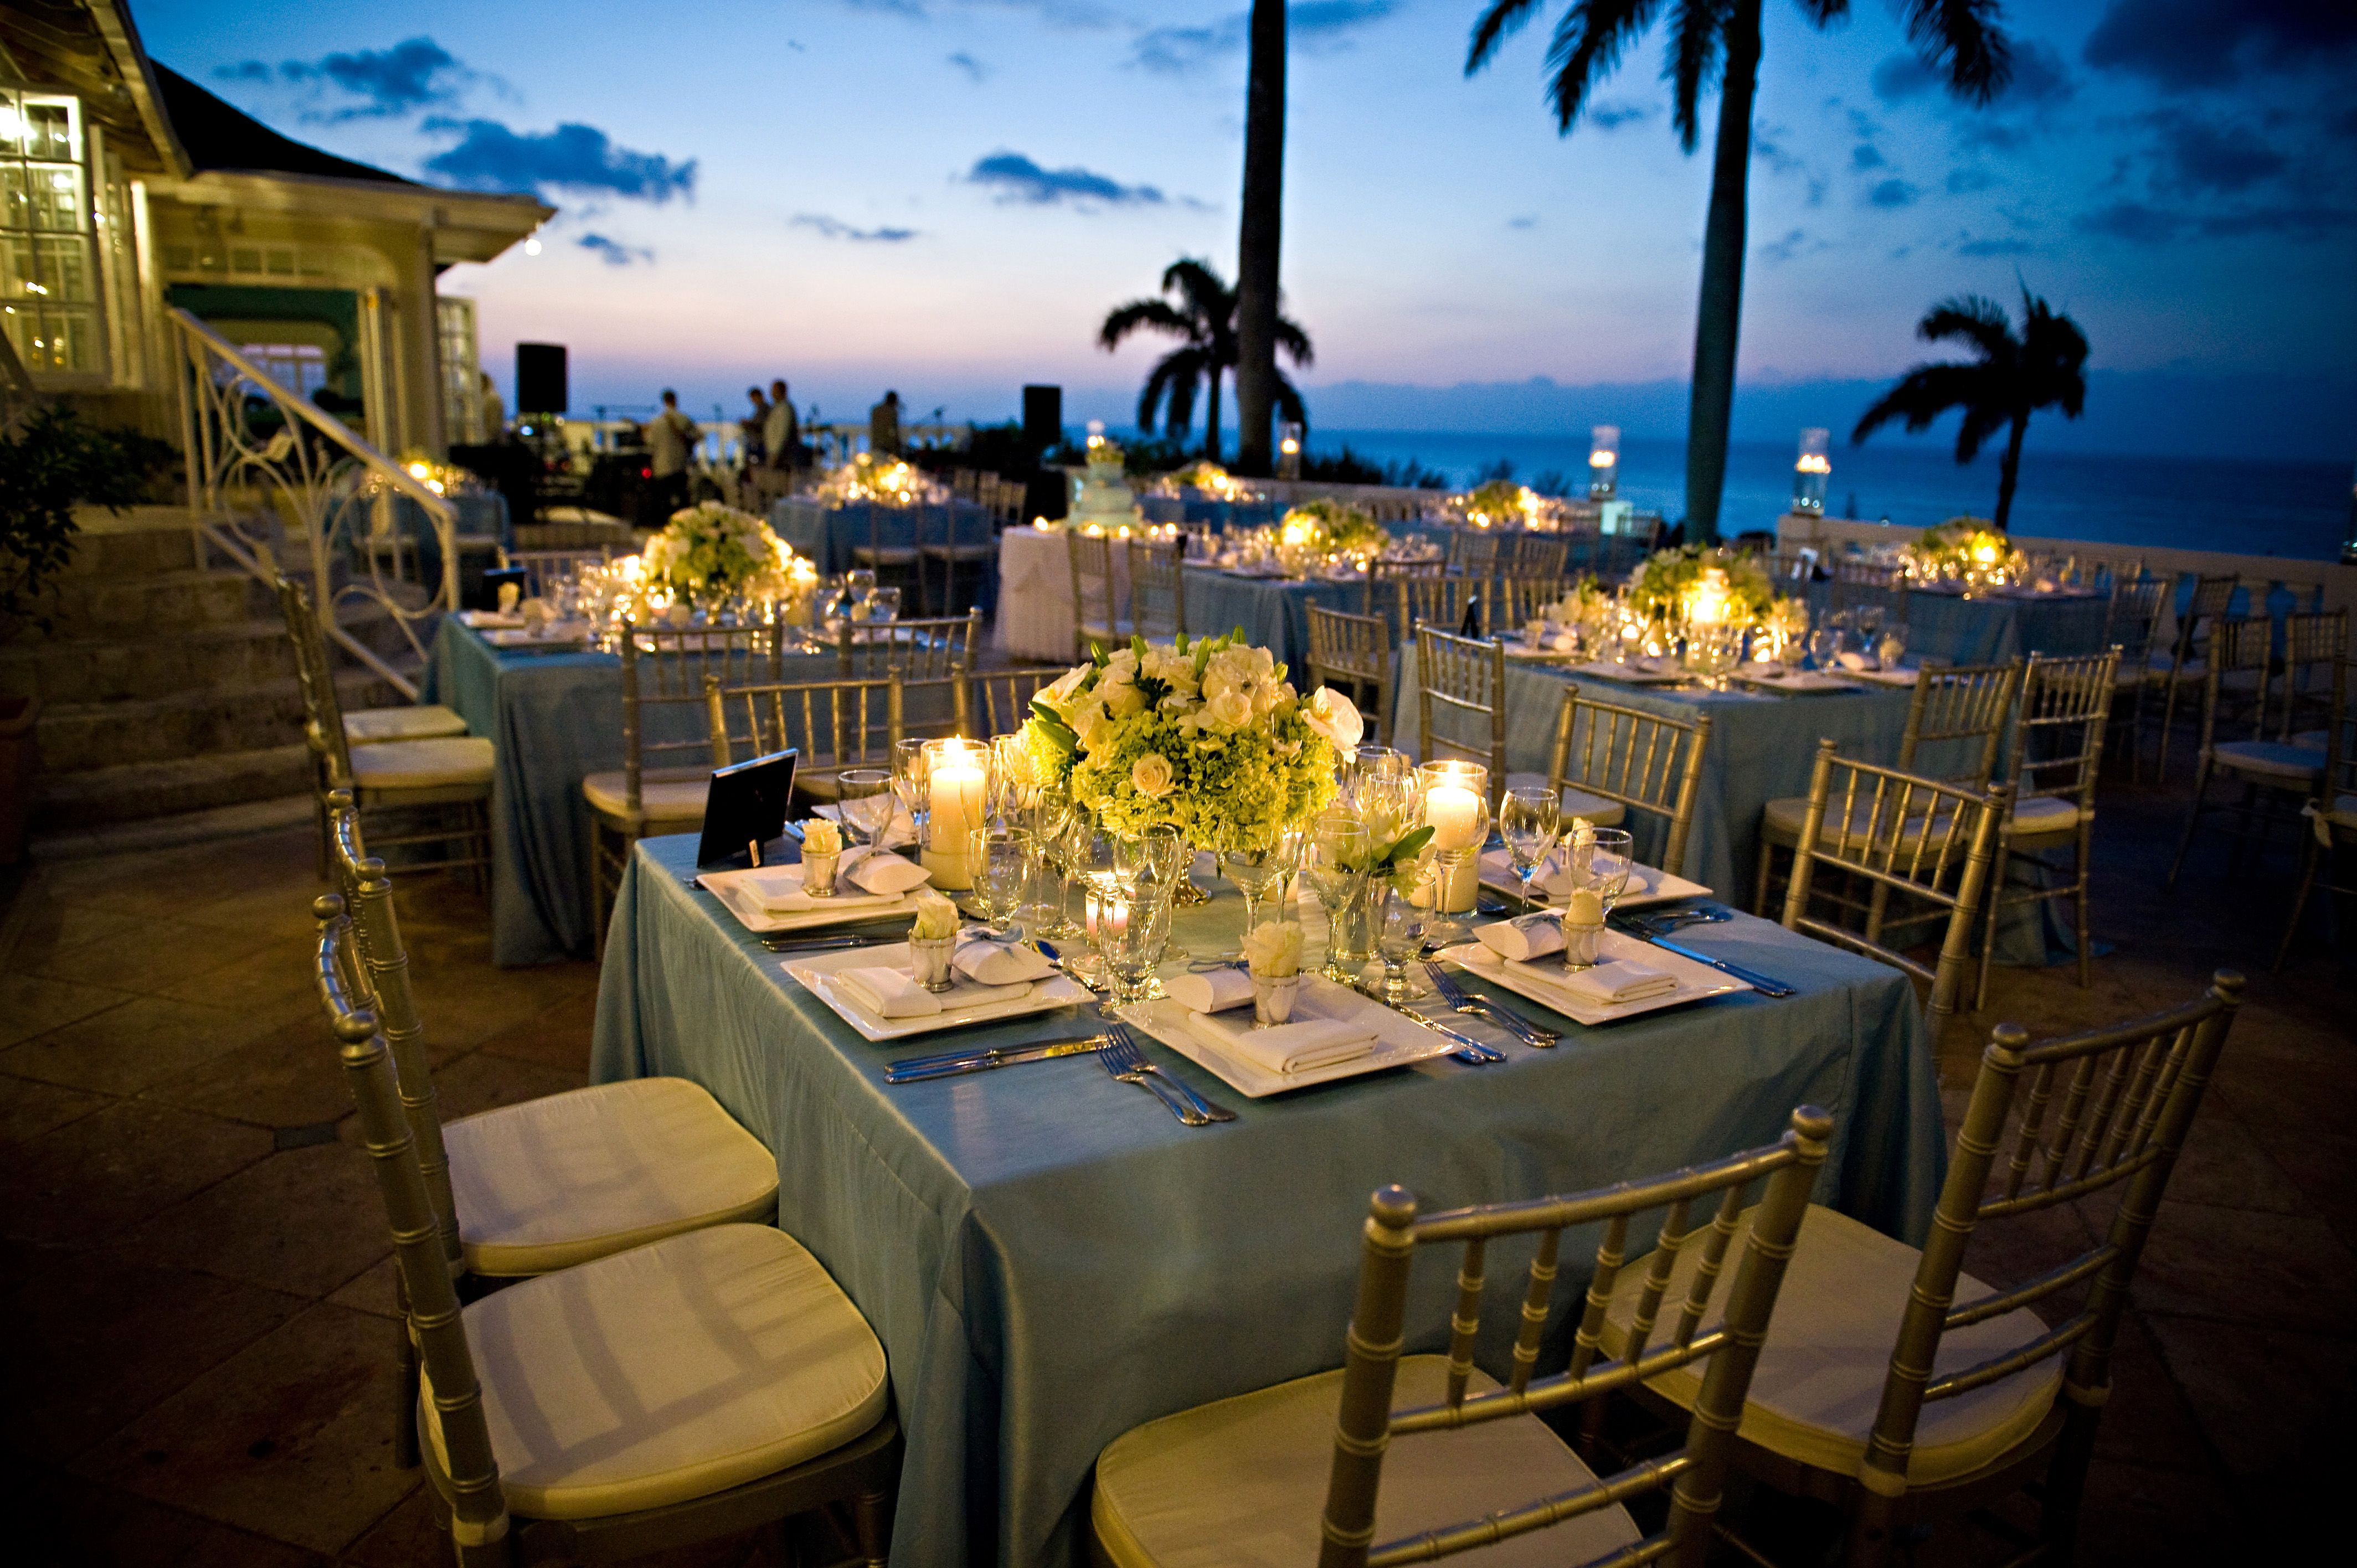 Wedding Reception At The Great House Weddings And Honeymoons In